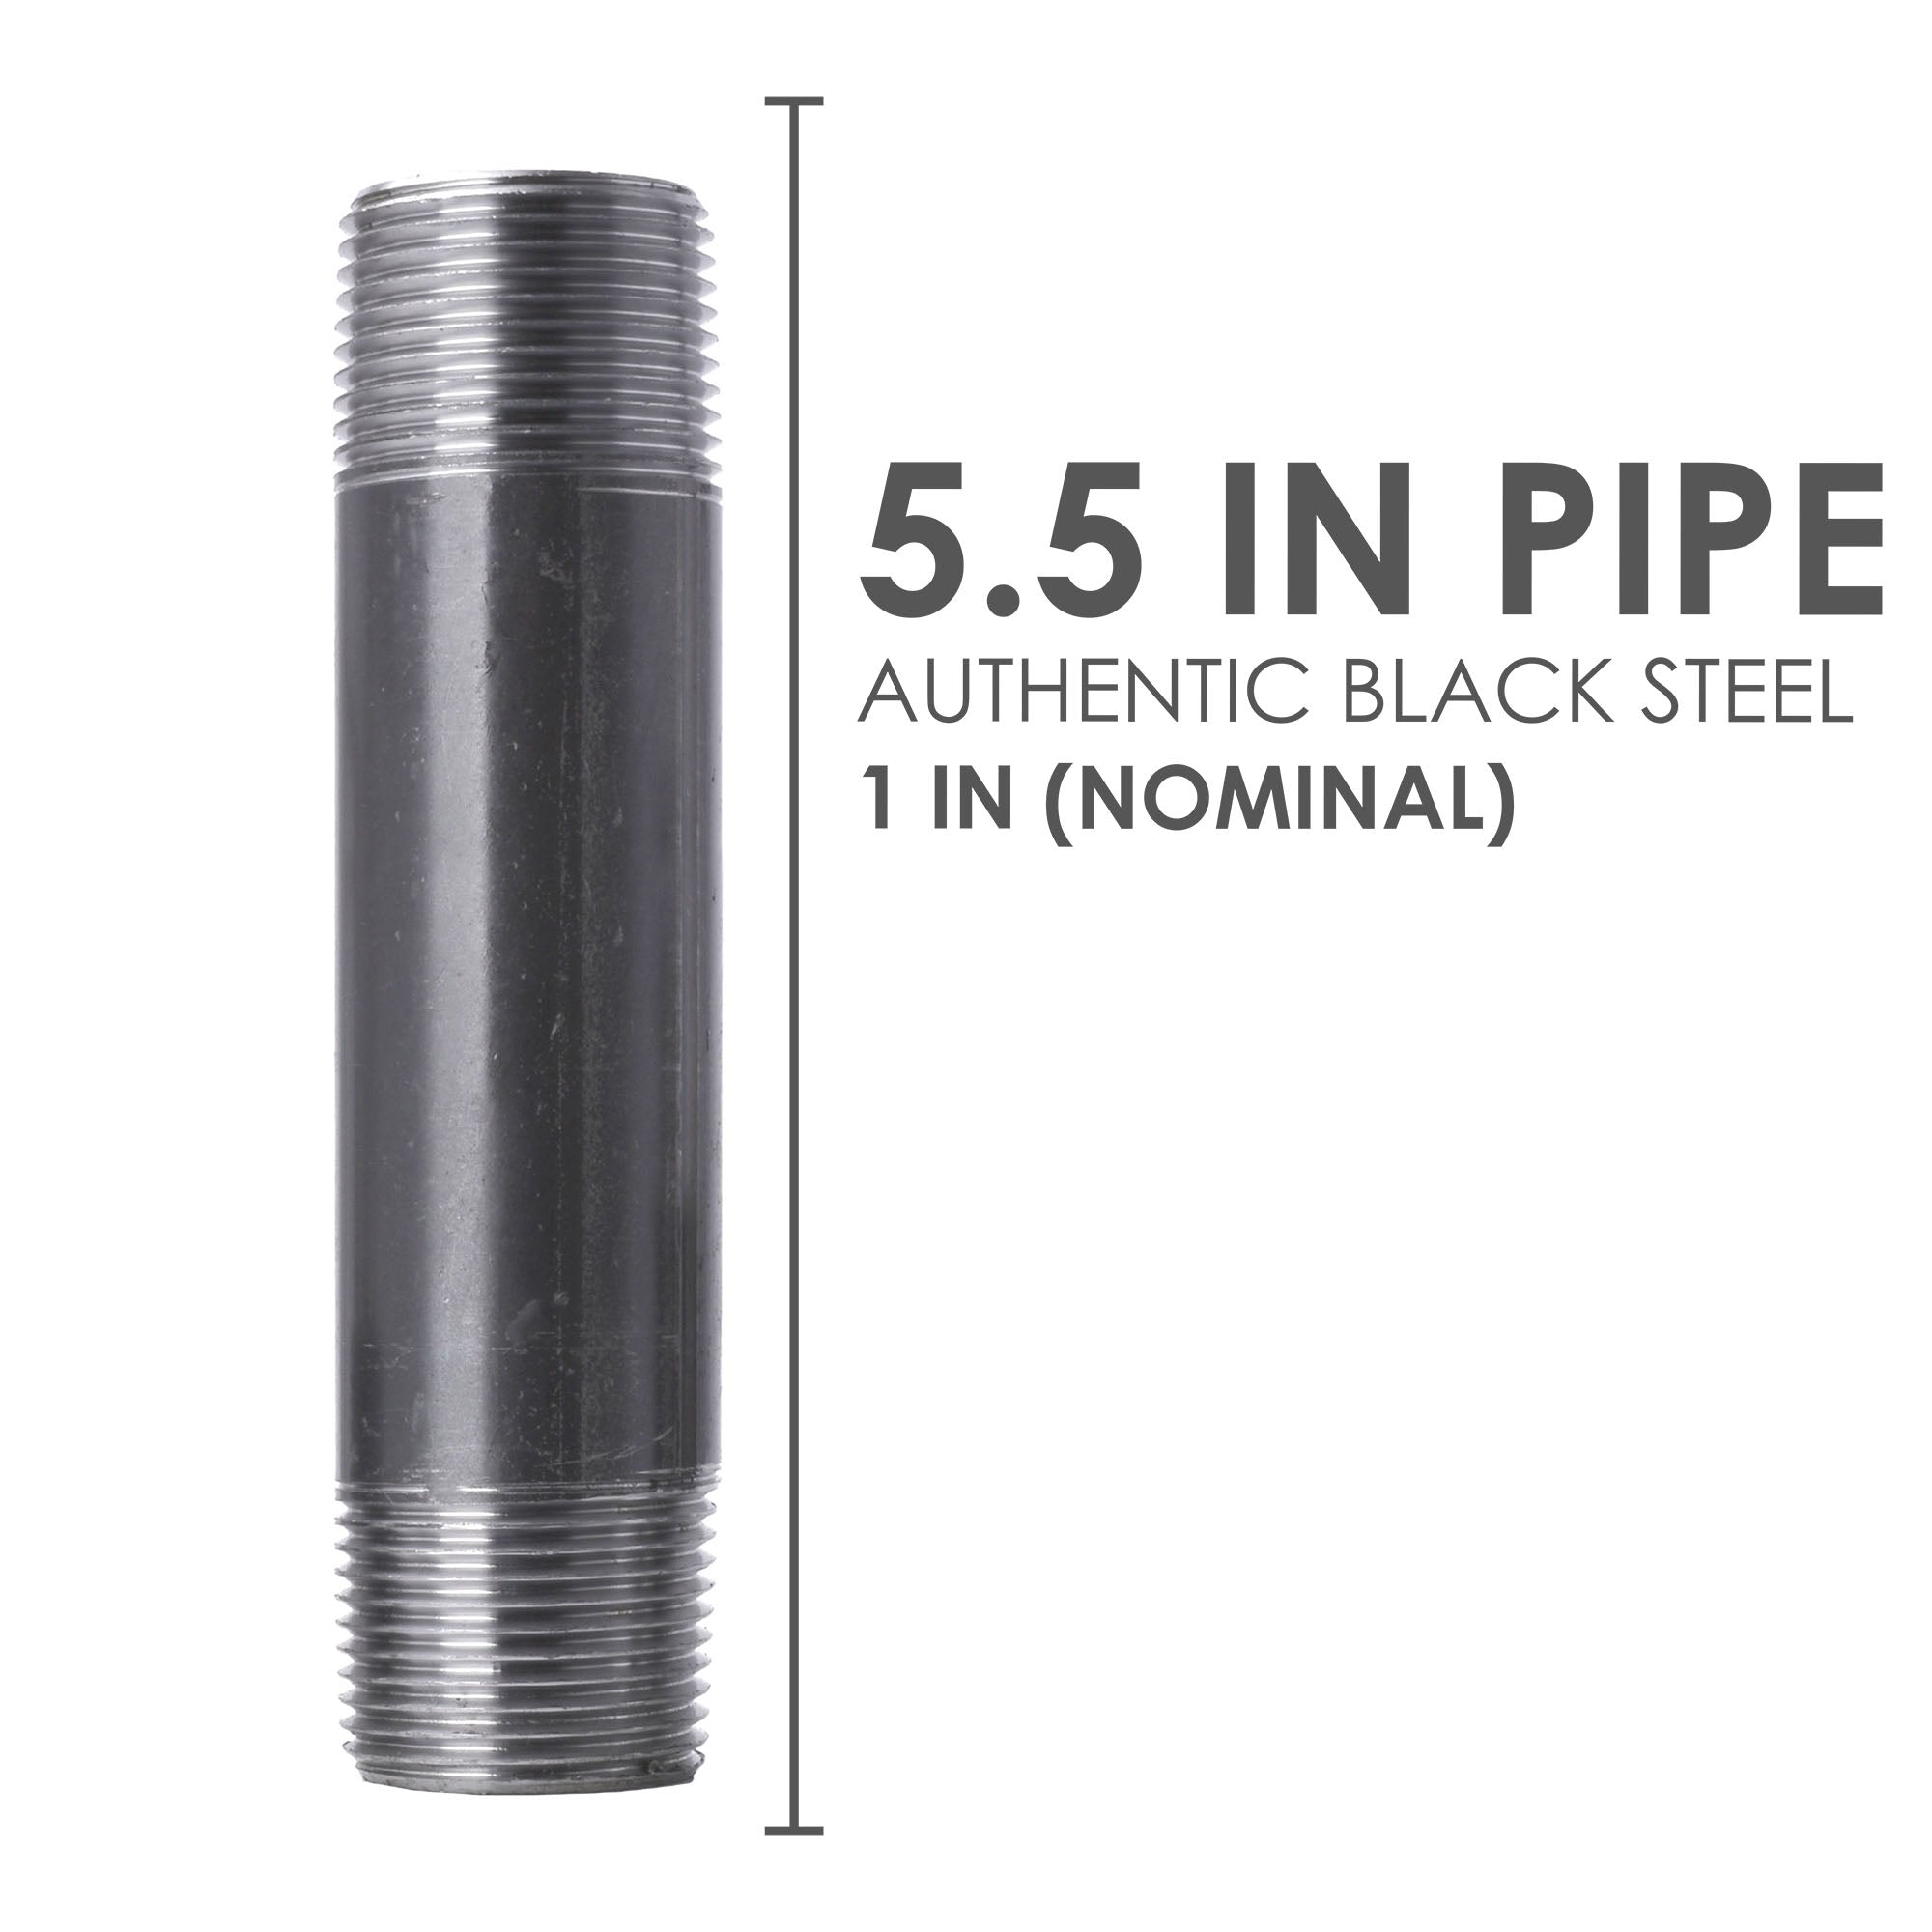 1 In X 5 1/2 In Black Pipe - Pipe Decor